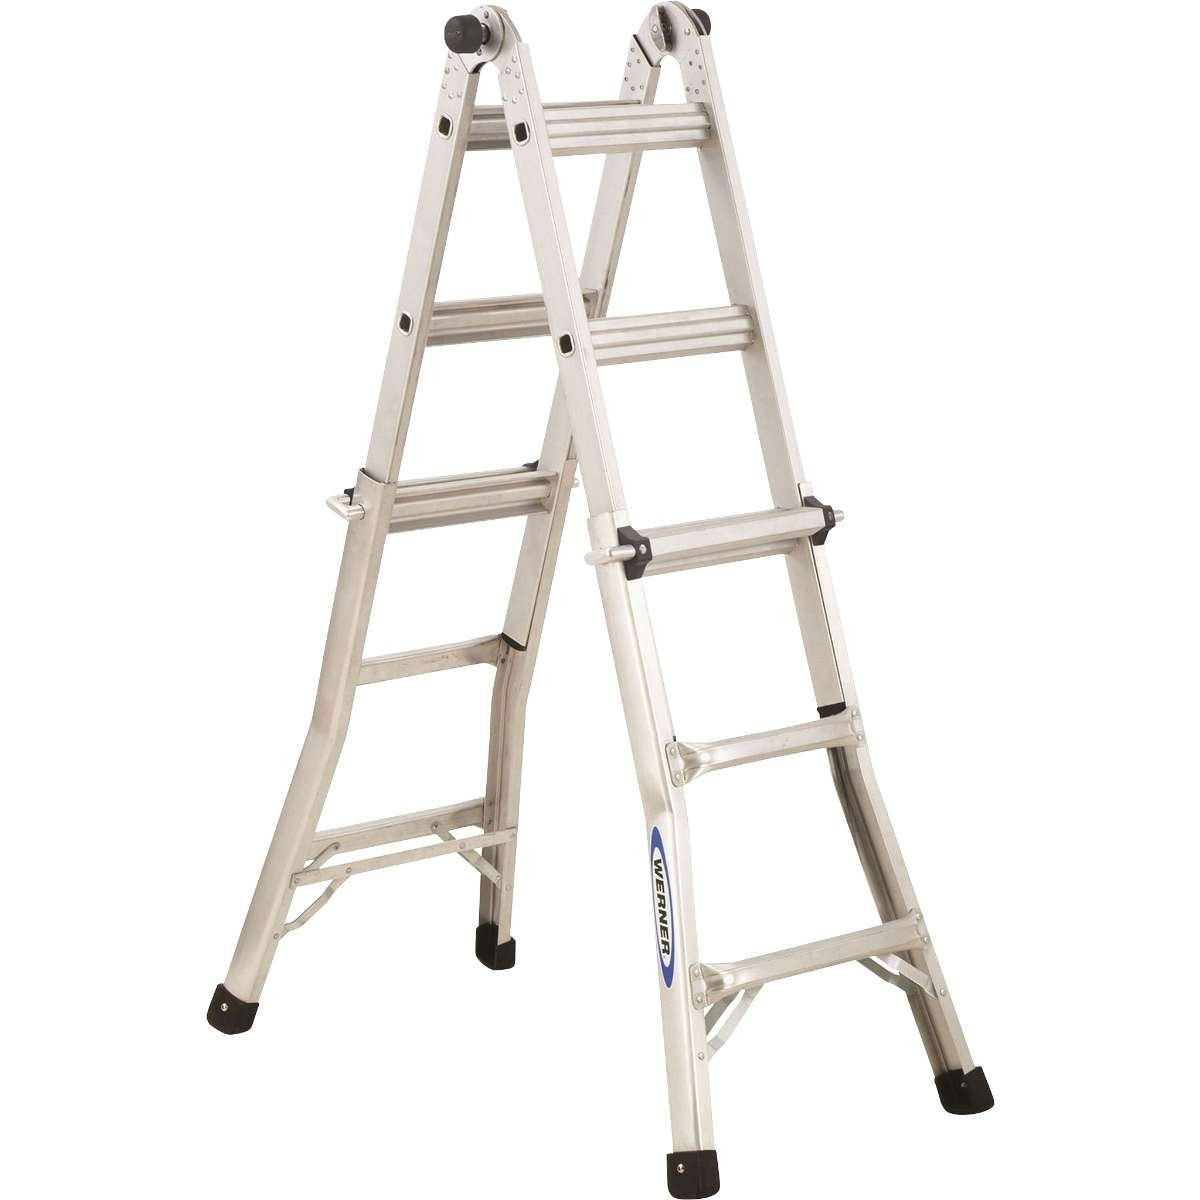 Werner 75053 Telescopic Combination Ladder 4x3